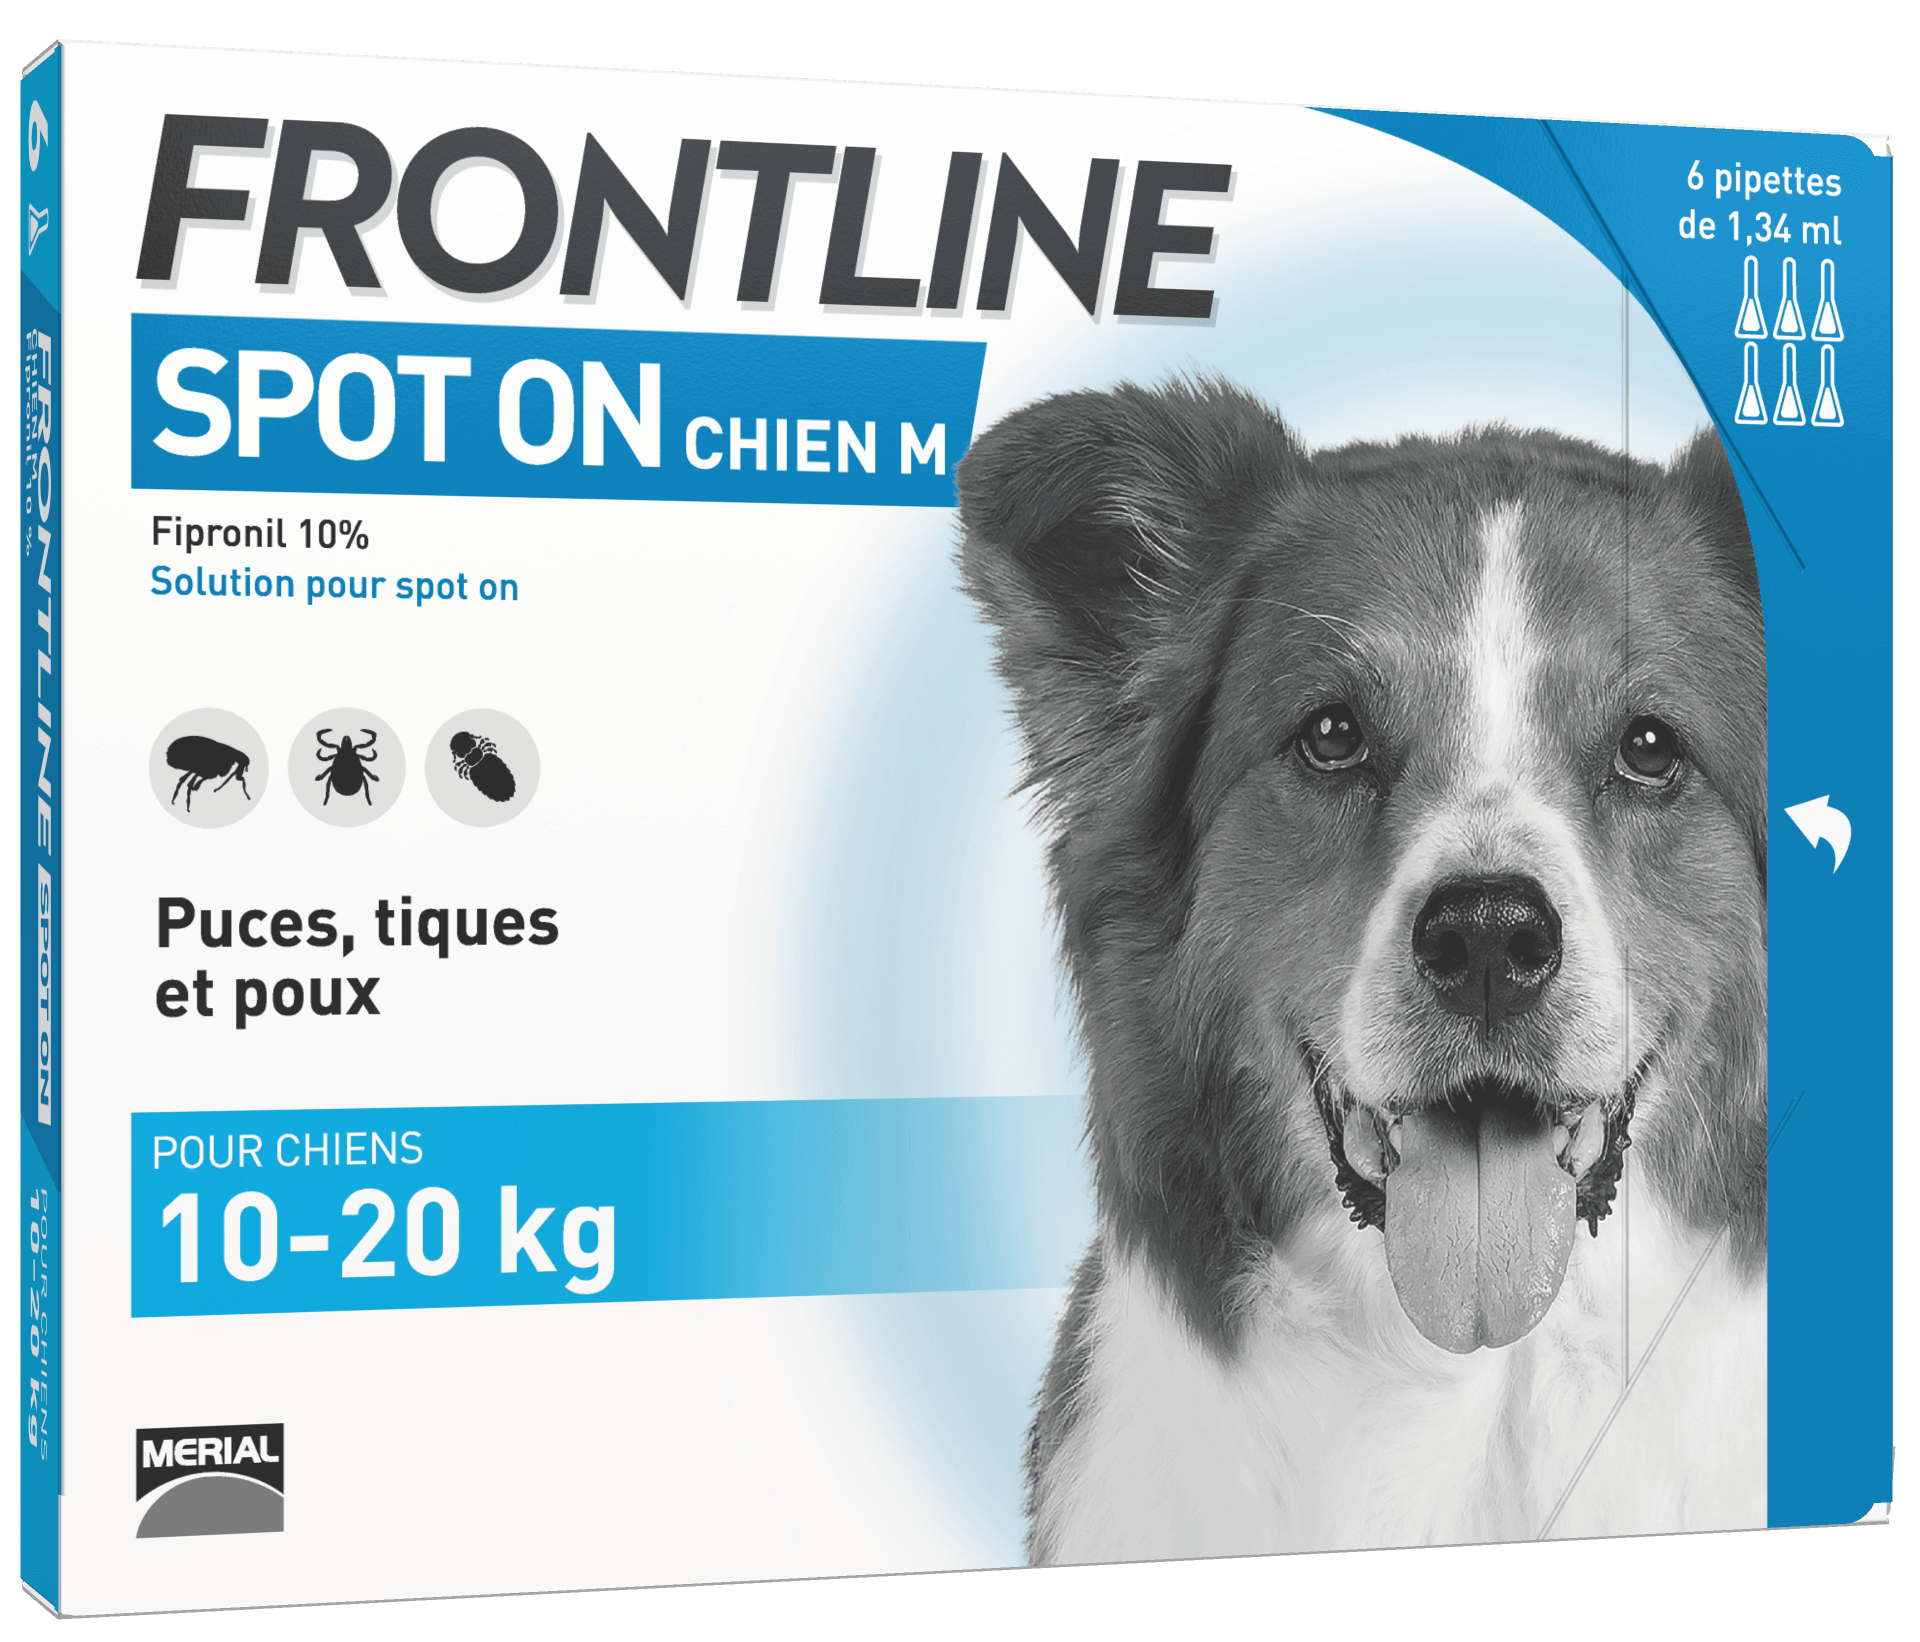 FRONTLINE Spot-On Chien